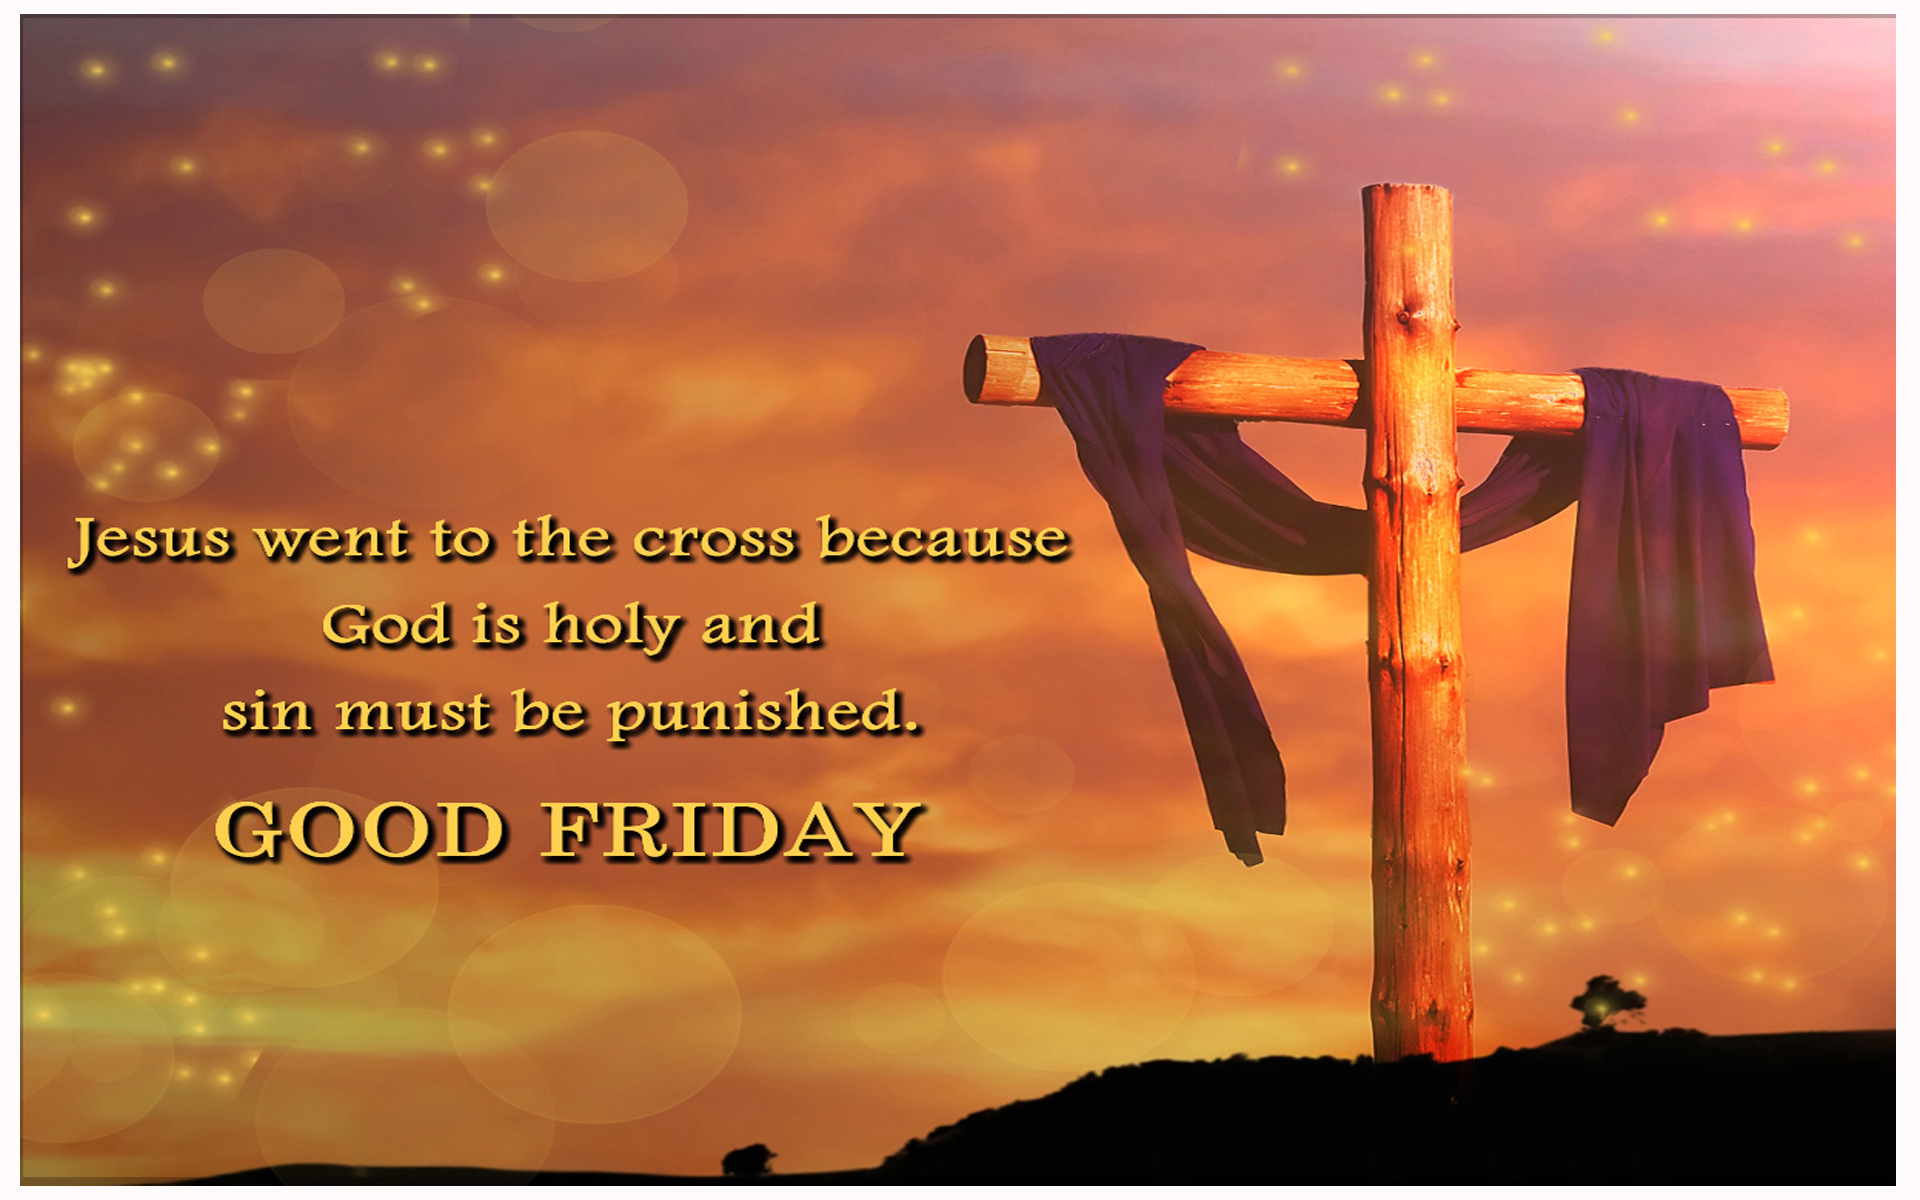 Good Friday HD Images Free Download